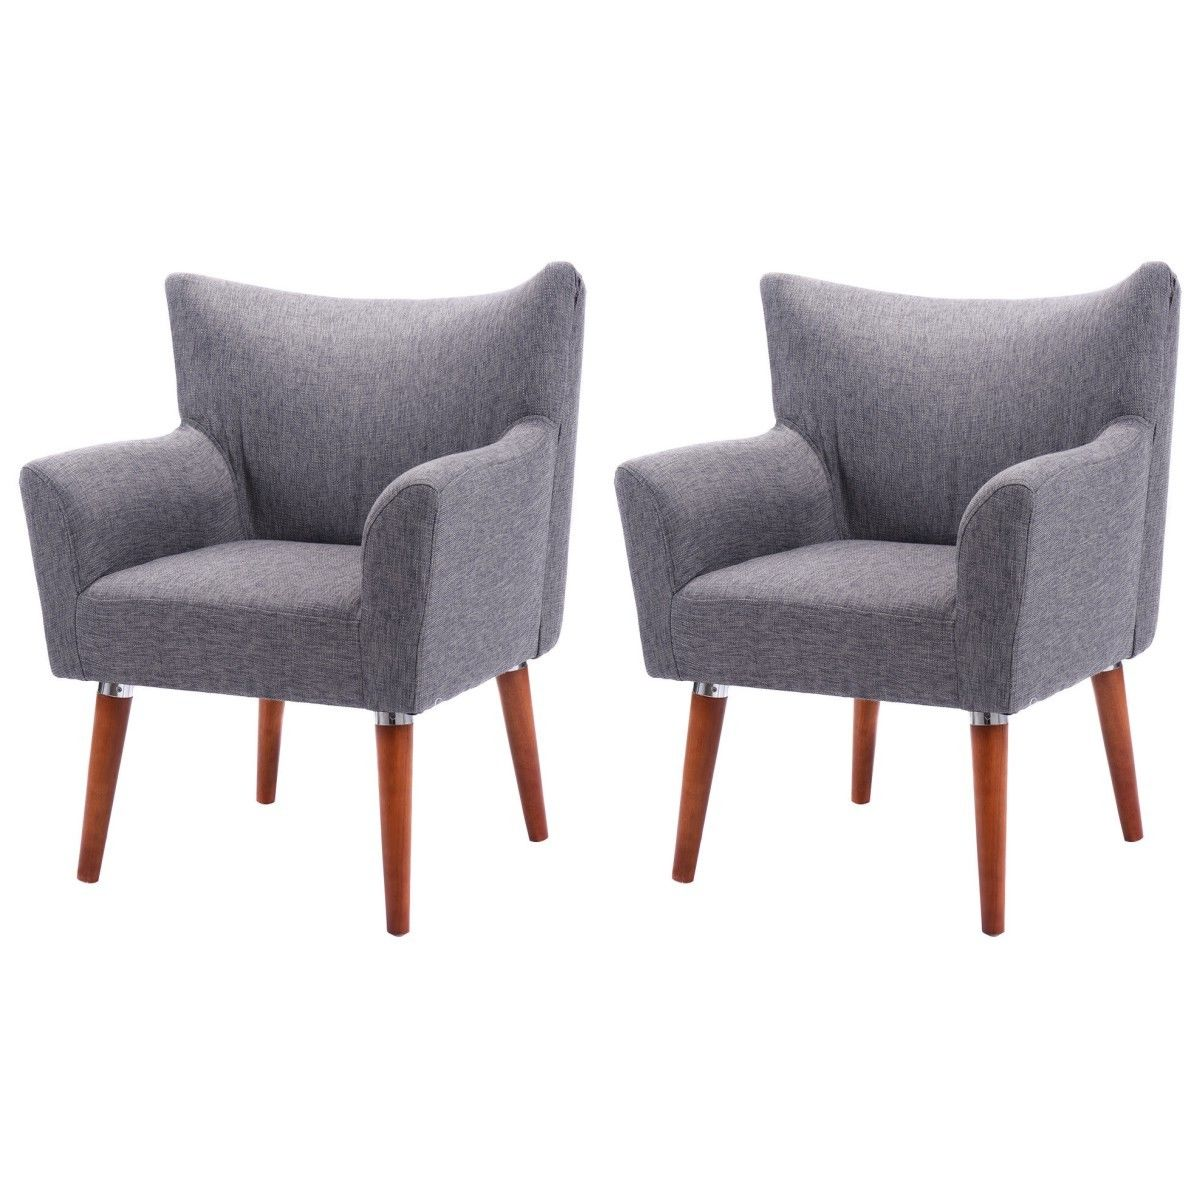 Single Chairs Giantex Set Of 2 Leisure Arm Chair Single Sofa Couch Seat